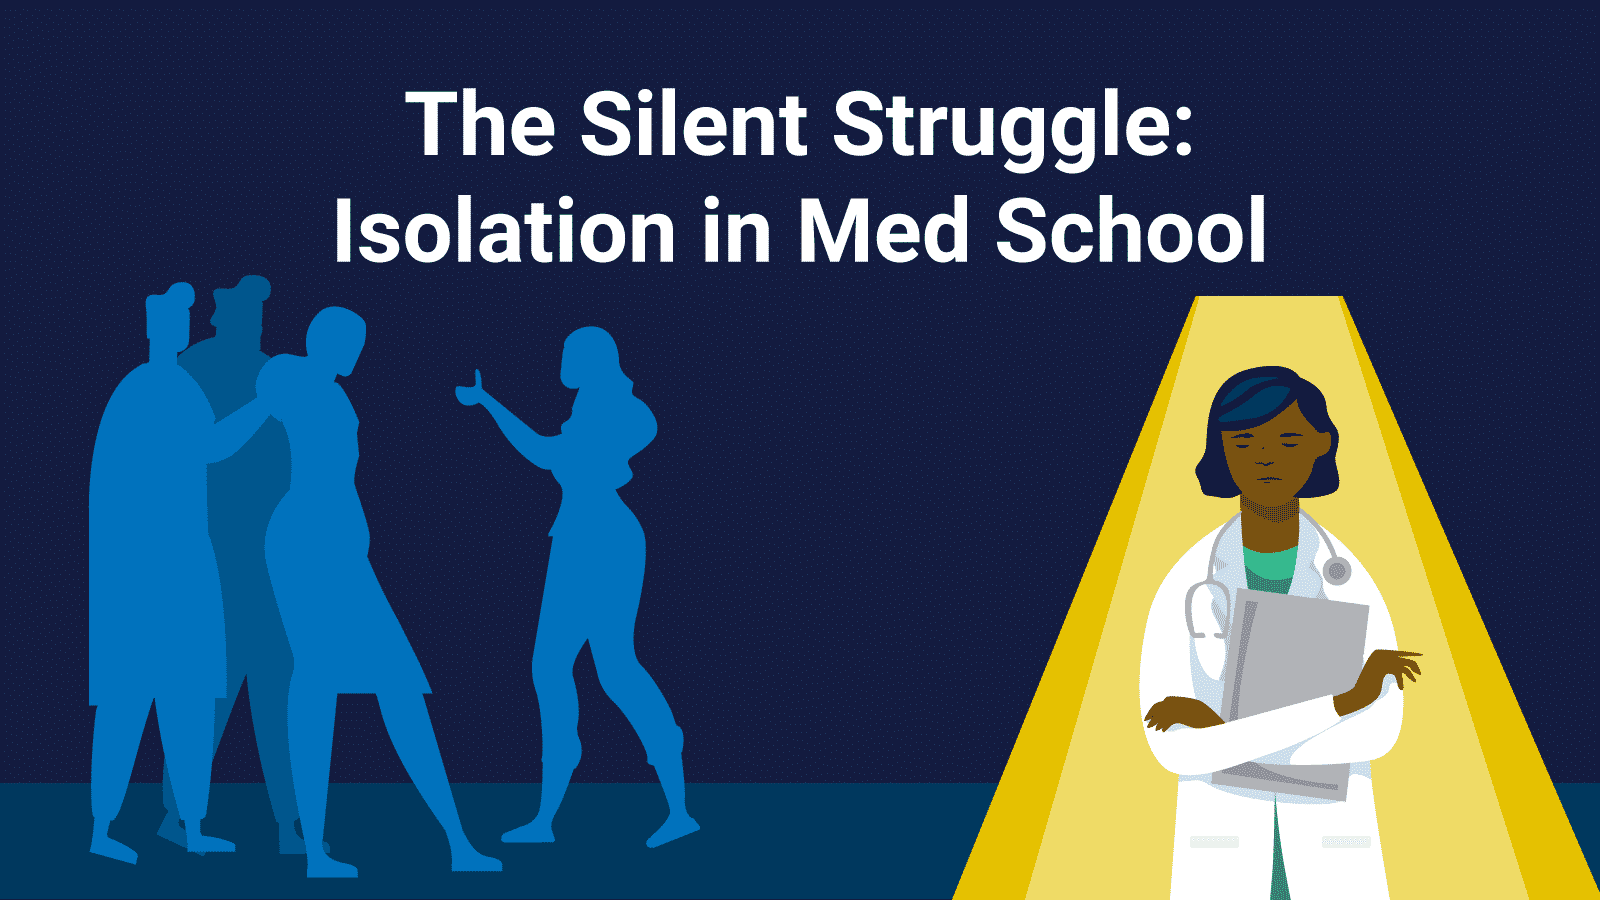 Medical student isolated from her peers